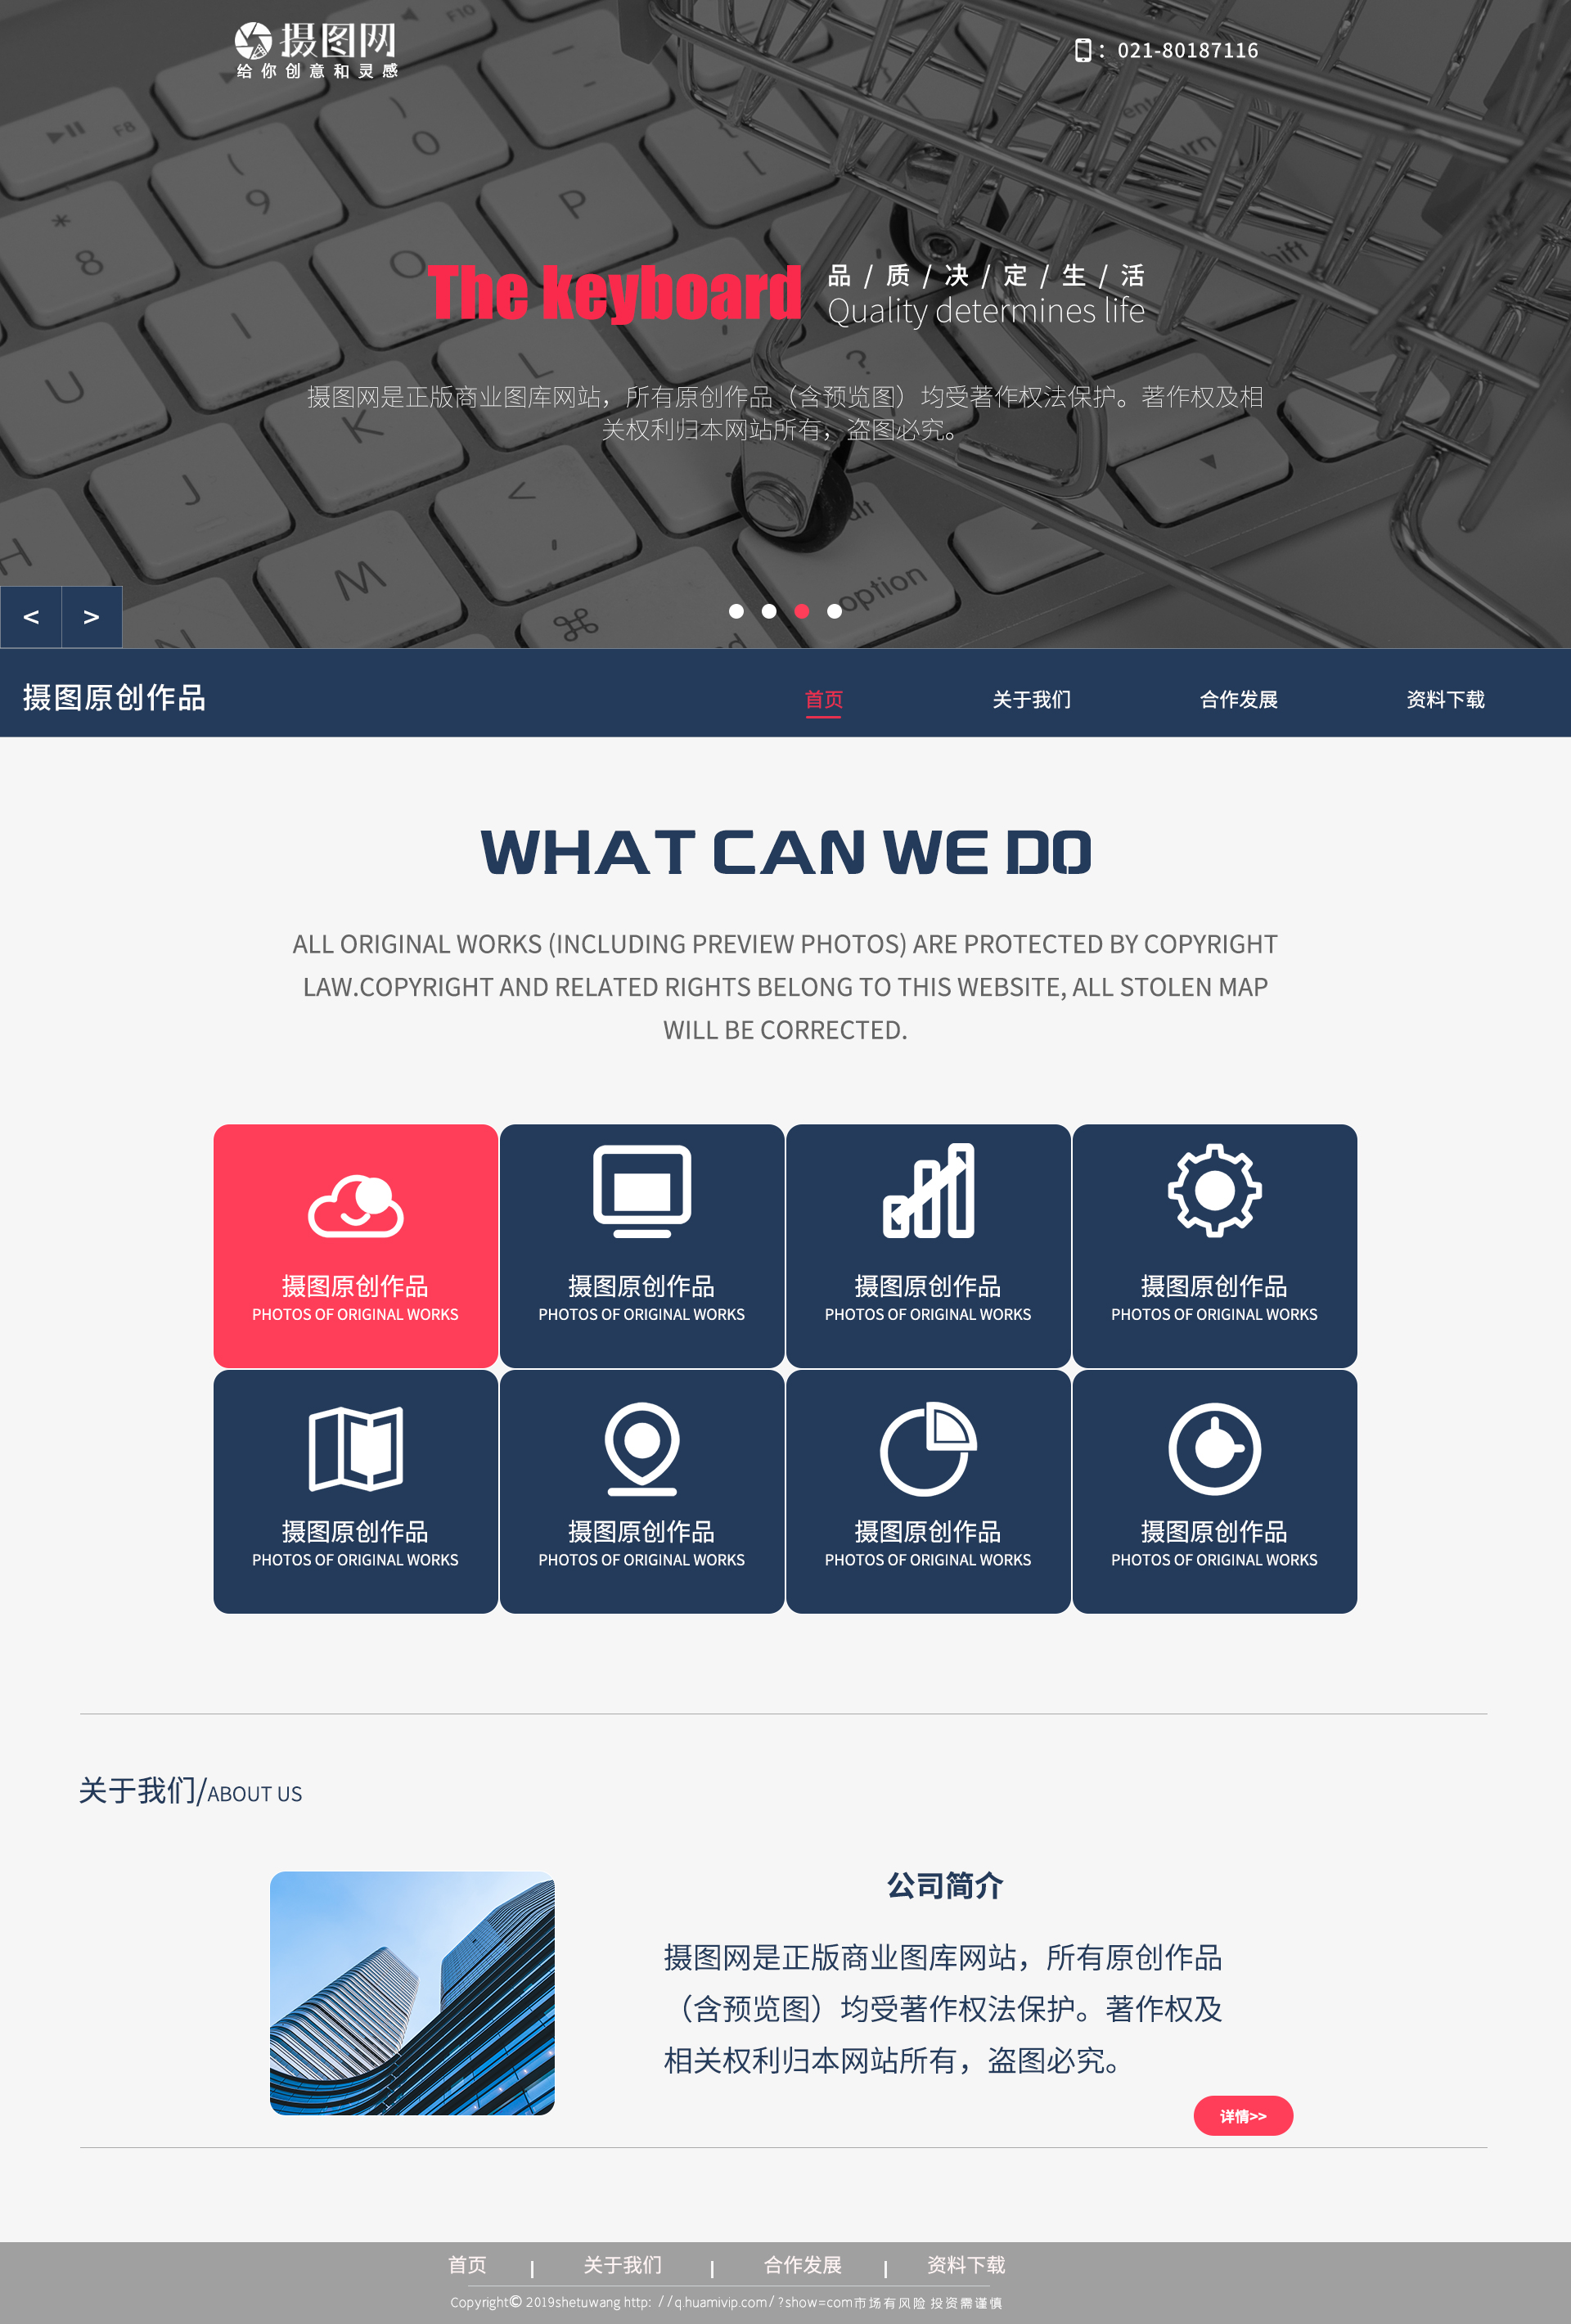 Ui Design Simple Business Web Official Website Home Page Template Image Picture Free Download 401587963 Lovepik Com